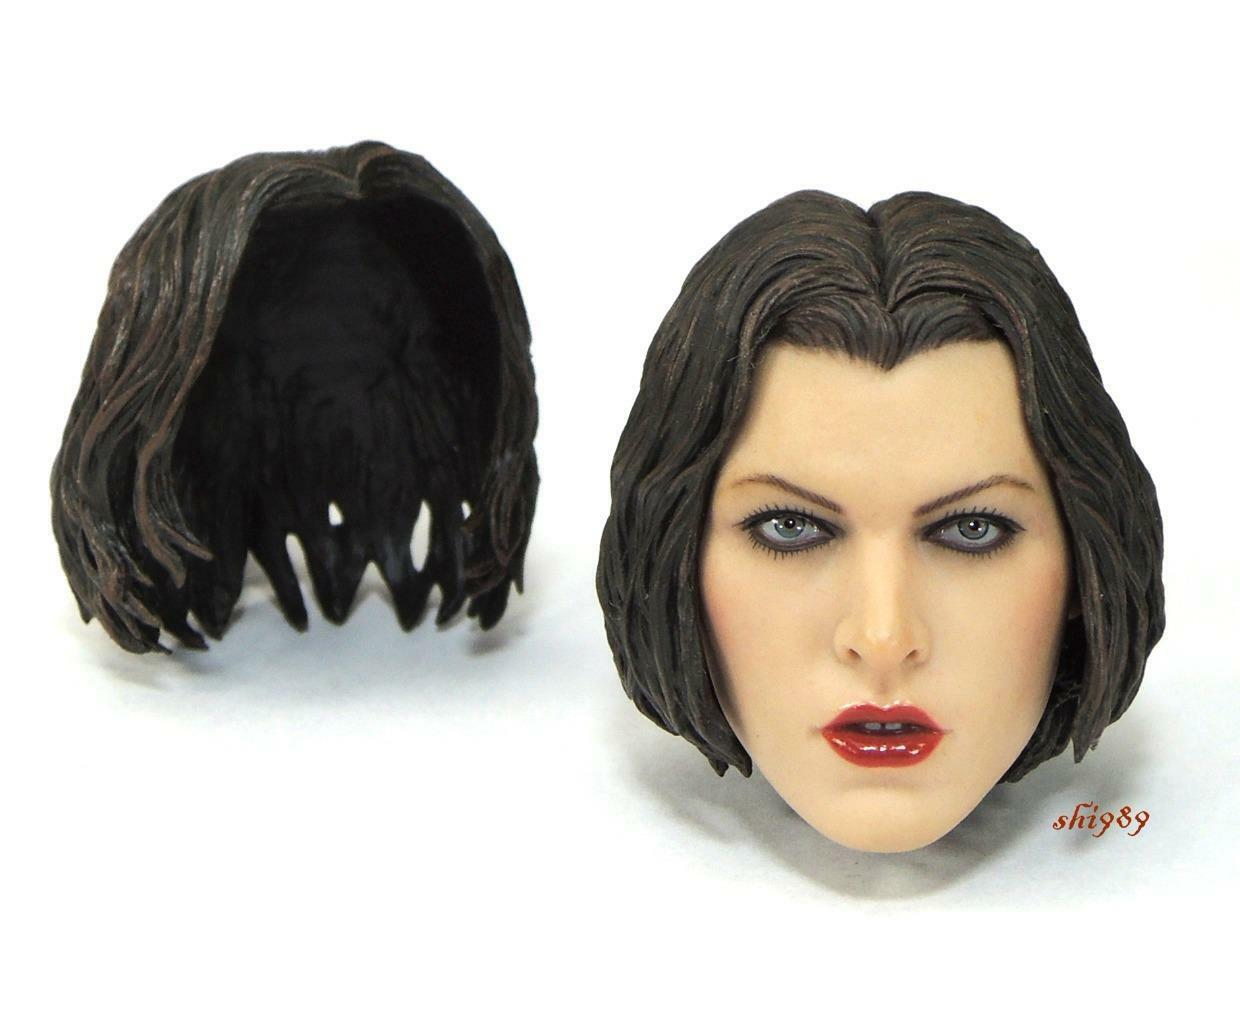 1 6 Scale Hot Toys MMS139 Resident Evil Afterlife Alice Head Sculpt ( Defect )